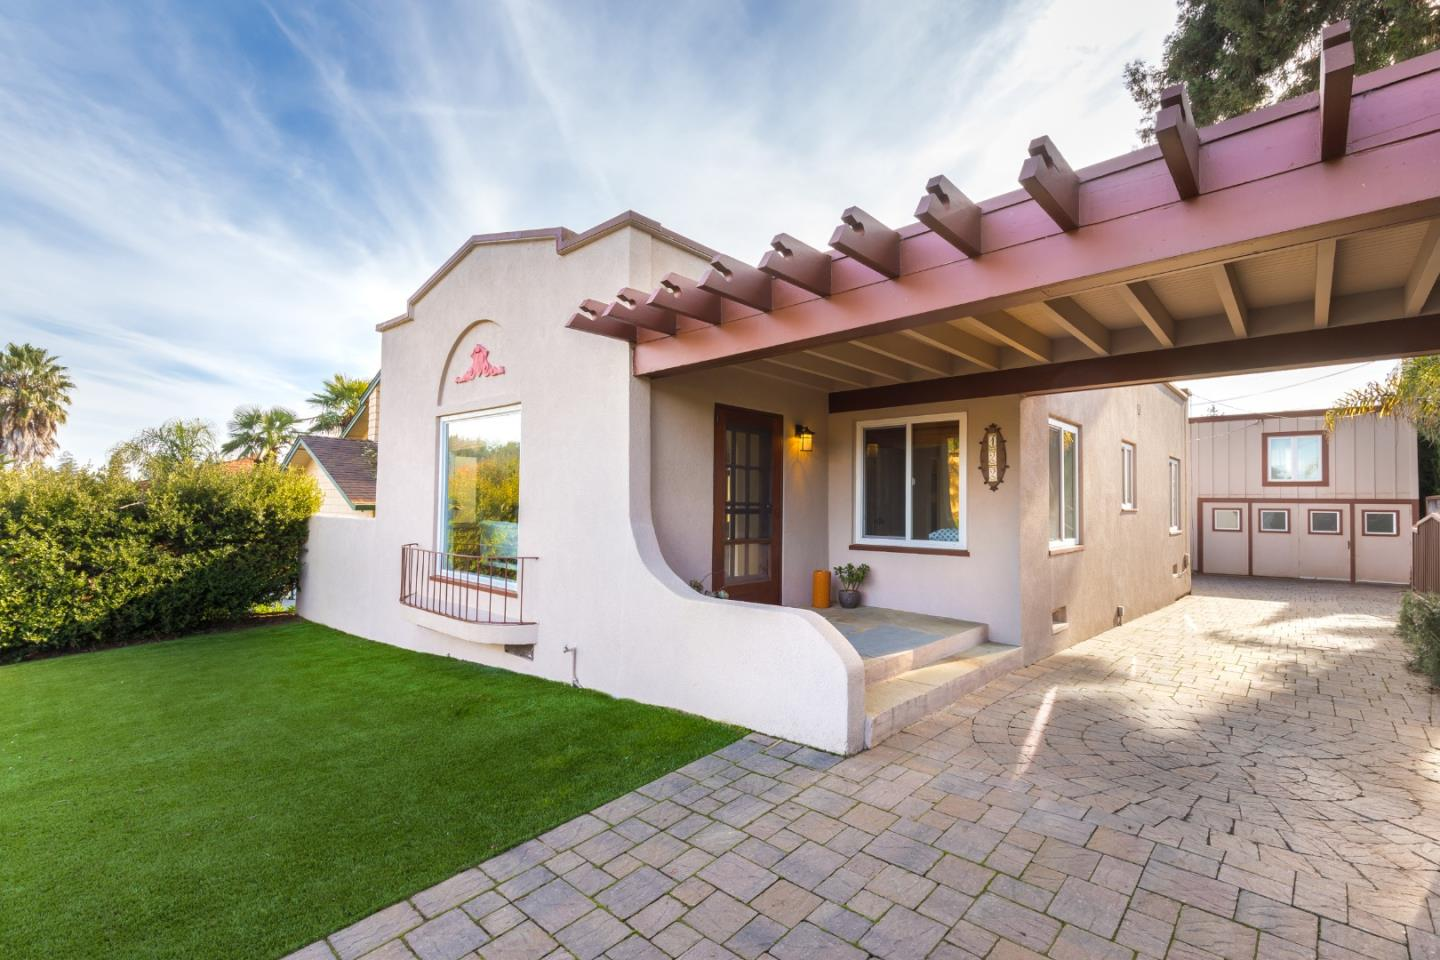 This classy Spanish-style Bungalow was moved up the hill from Ocean St to a more suitably distinguished neighborhood in the 30s. She's clearly at ease here, and you will be too! She enjoys expansive views of our city's lights & the distant Monterey Bay, sunny & tidy grounds, fruit trees, garden beds, long-time neighbors and gated privacy. A detached 1.5 car garage and nimble (but not rentable) 2nd story studio-space provide harmonious companionship. Because of her proximity to town, and to the innovative campuses over the Hill, she doesn't feel isolated or distant. Over the years, her inhabitants have reverentially tended & preserved her beautiful wood floors, coved ceilings, picture rails and classic moldings. And their lavish embellishments and newfangled fixtures (like appliances, cabinets, counters, wiring, fireplace, furnace, foundation bolts, roofing, windows and more) will be her lease on many graceful and happy decades to come. You should meet her! Let me set that up : )